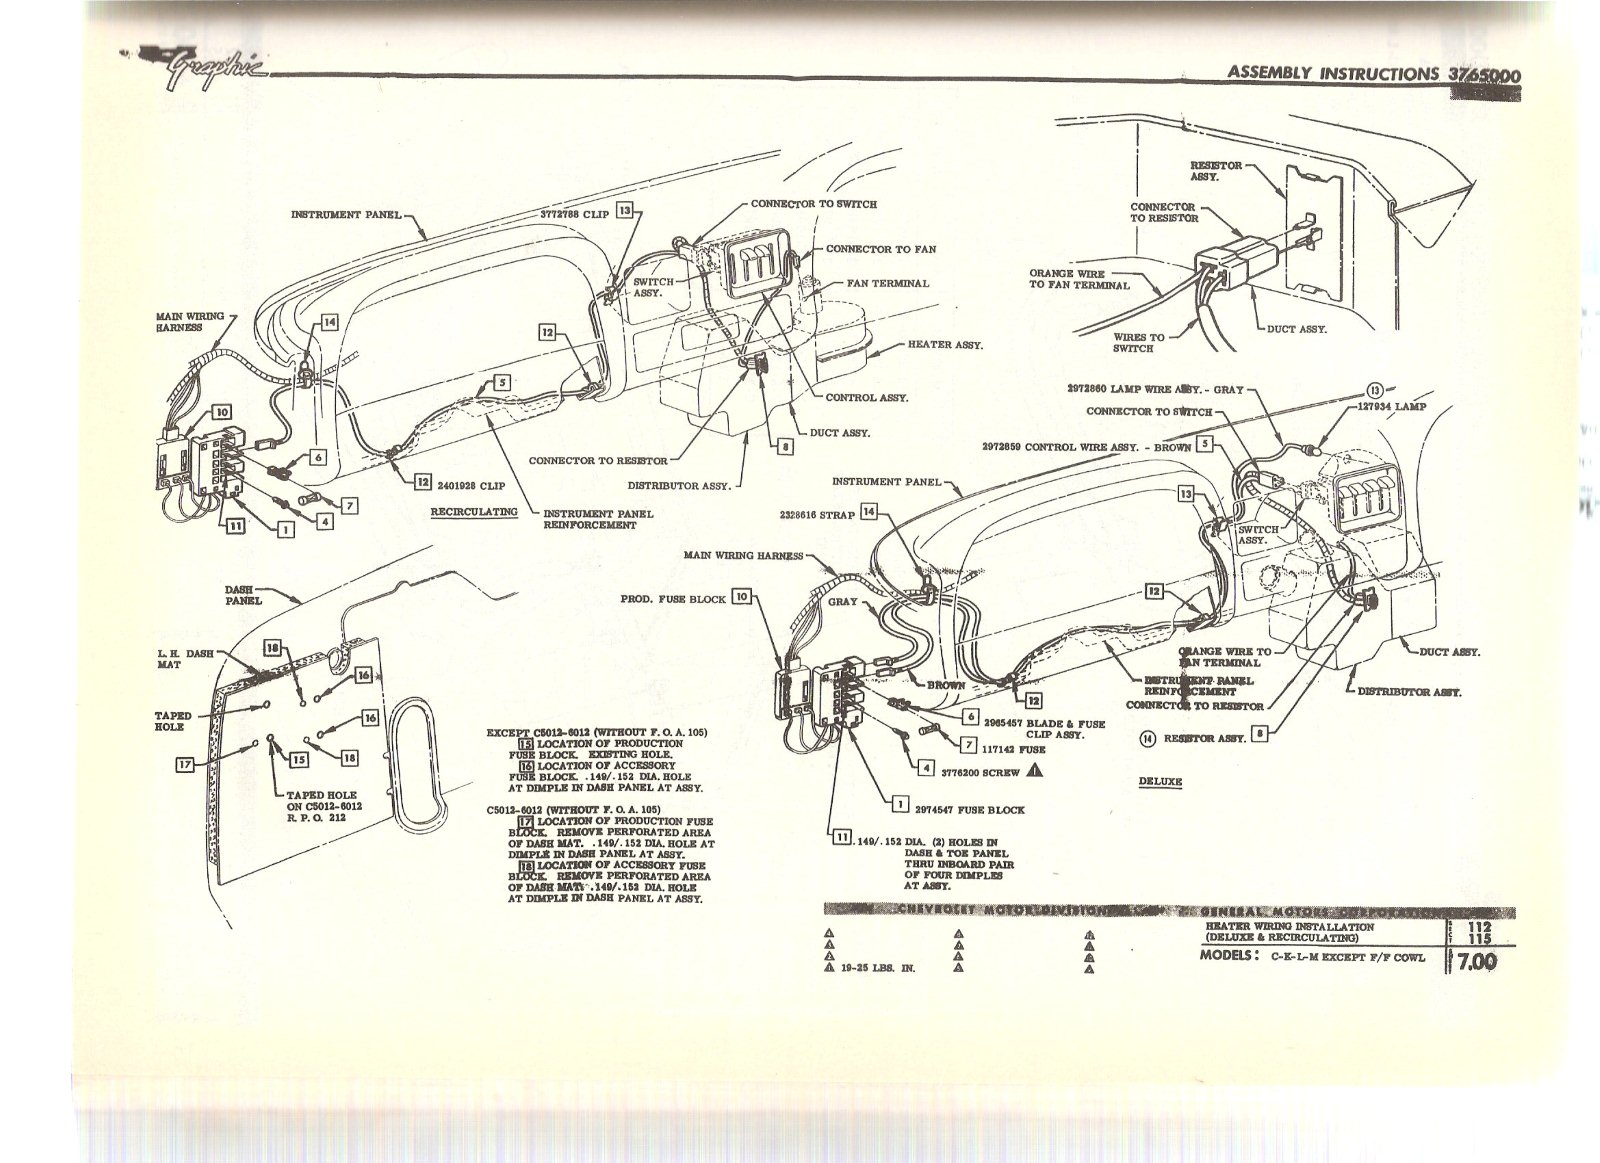 hight resolution of wiring diagram also likewise also further bus 53 color as well besides 1955 thunderbird g